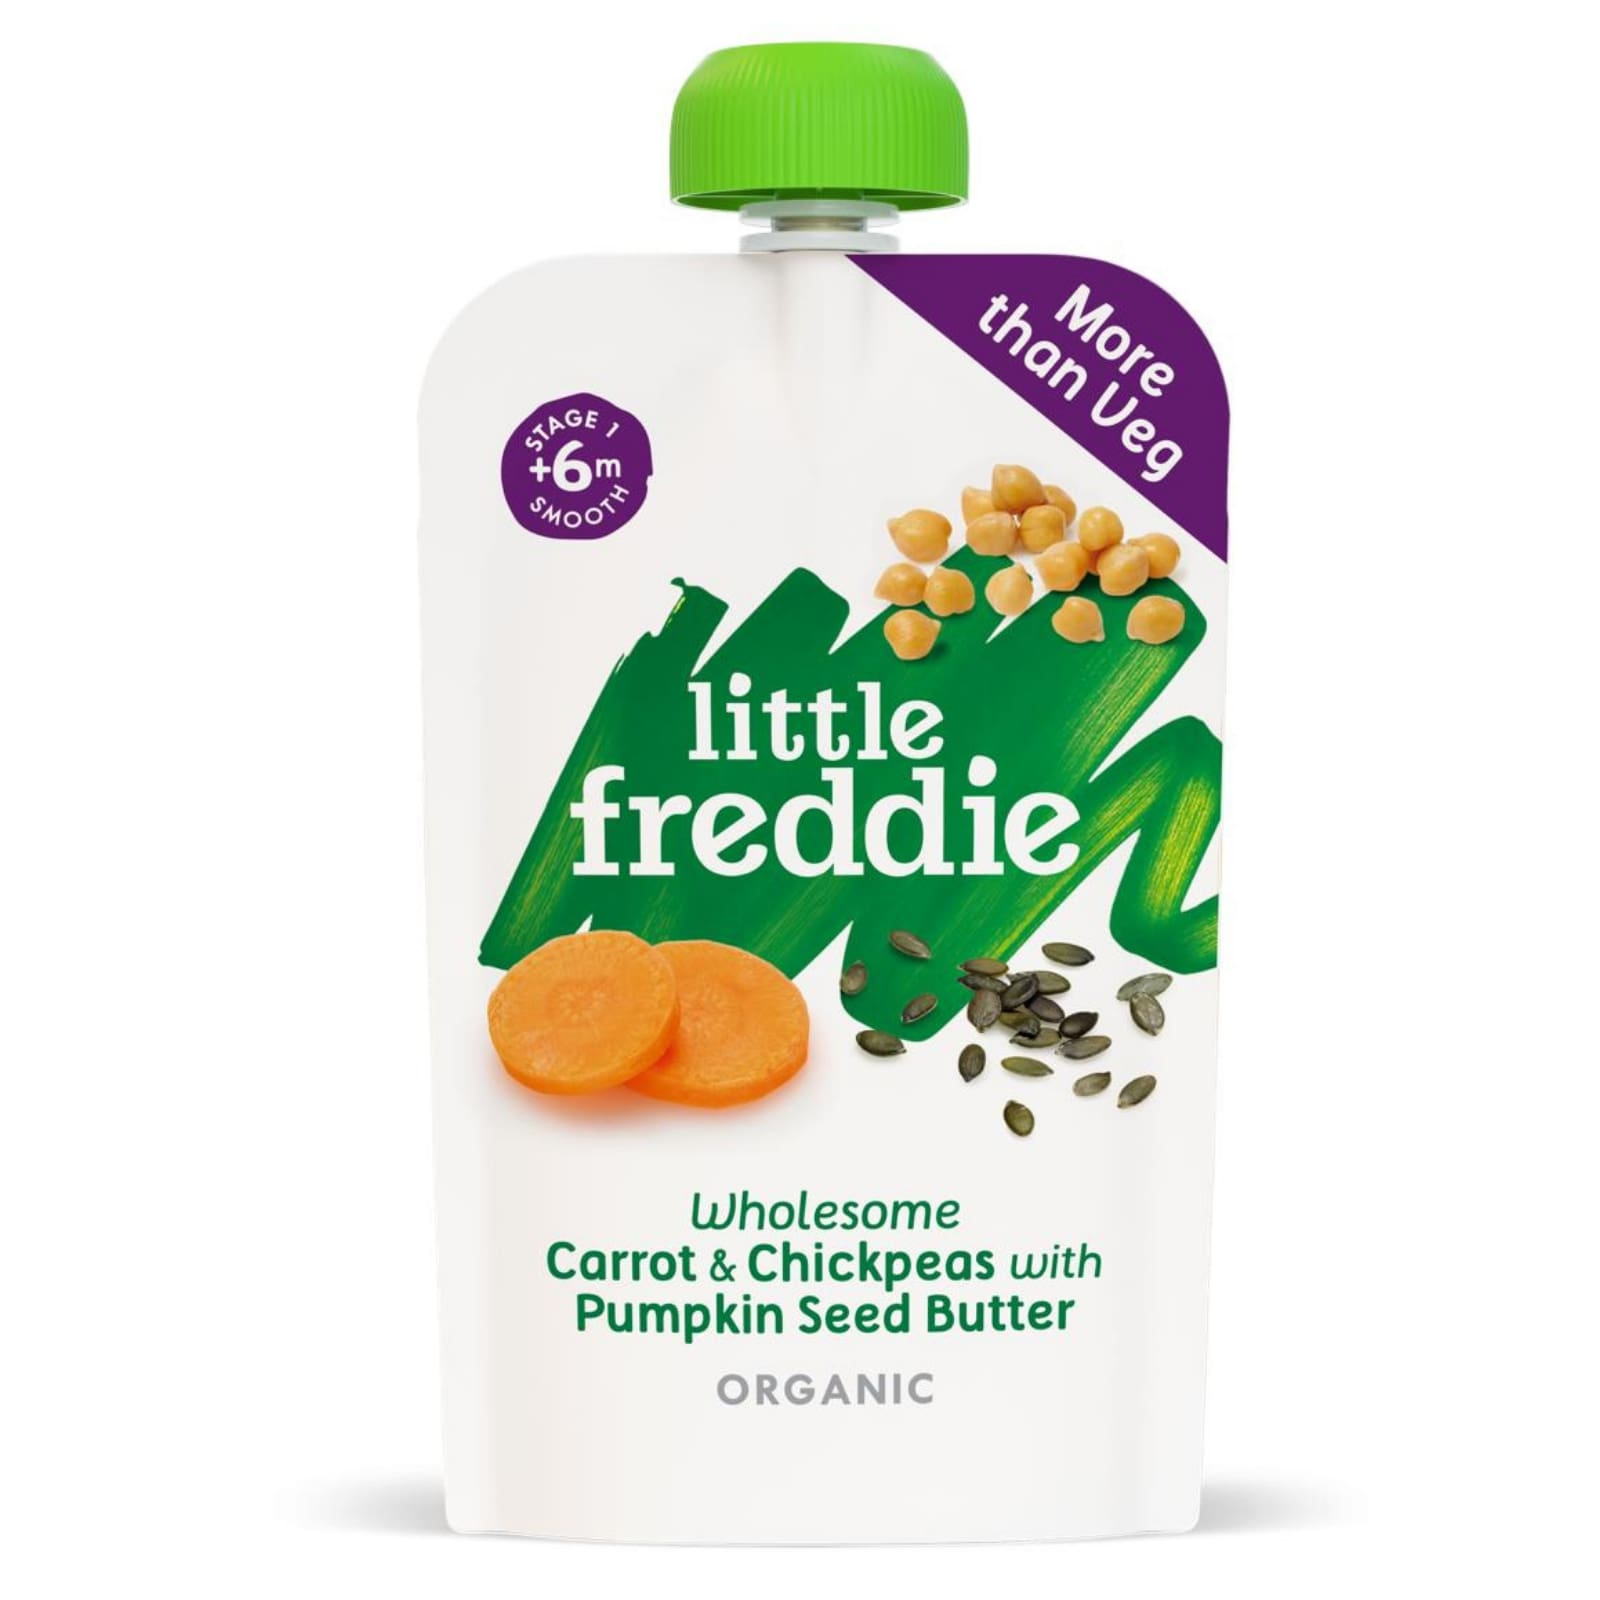 Little Freddie Wholesome Carrot & Chickpeas with Pumpkin Seed Butter 120g